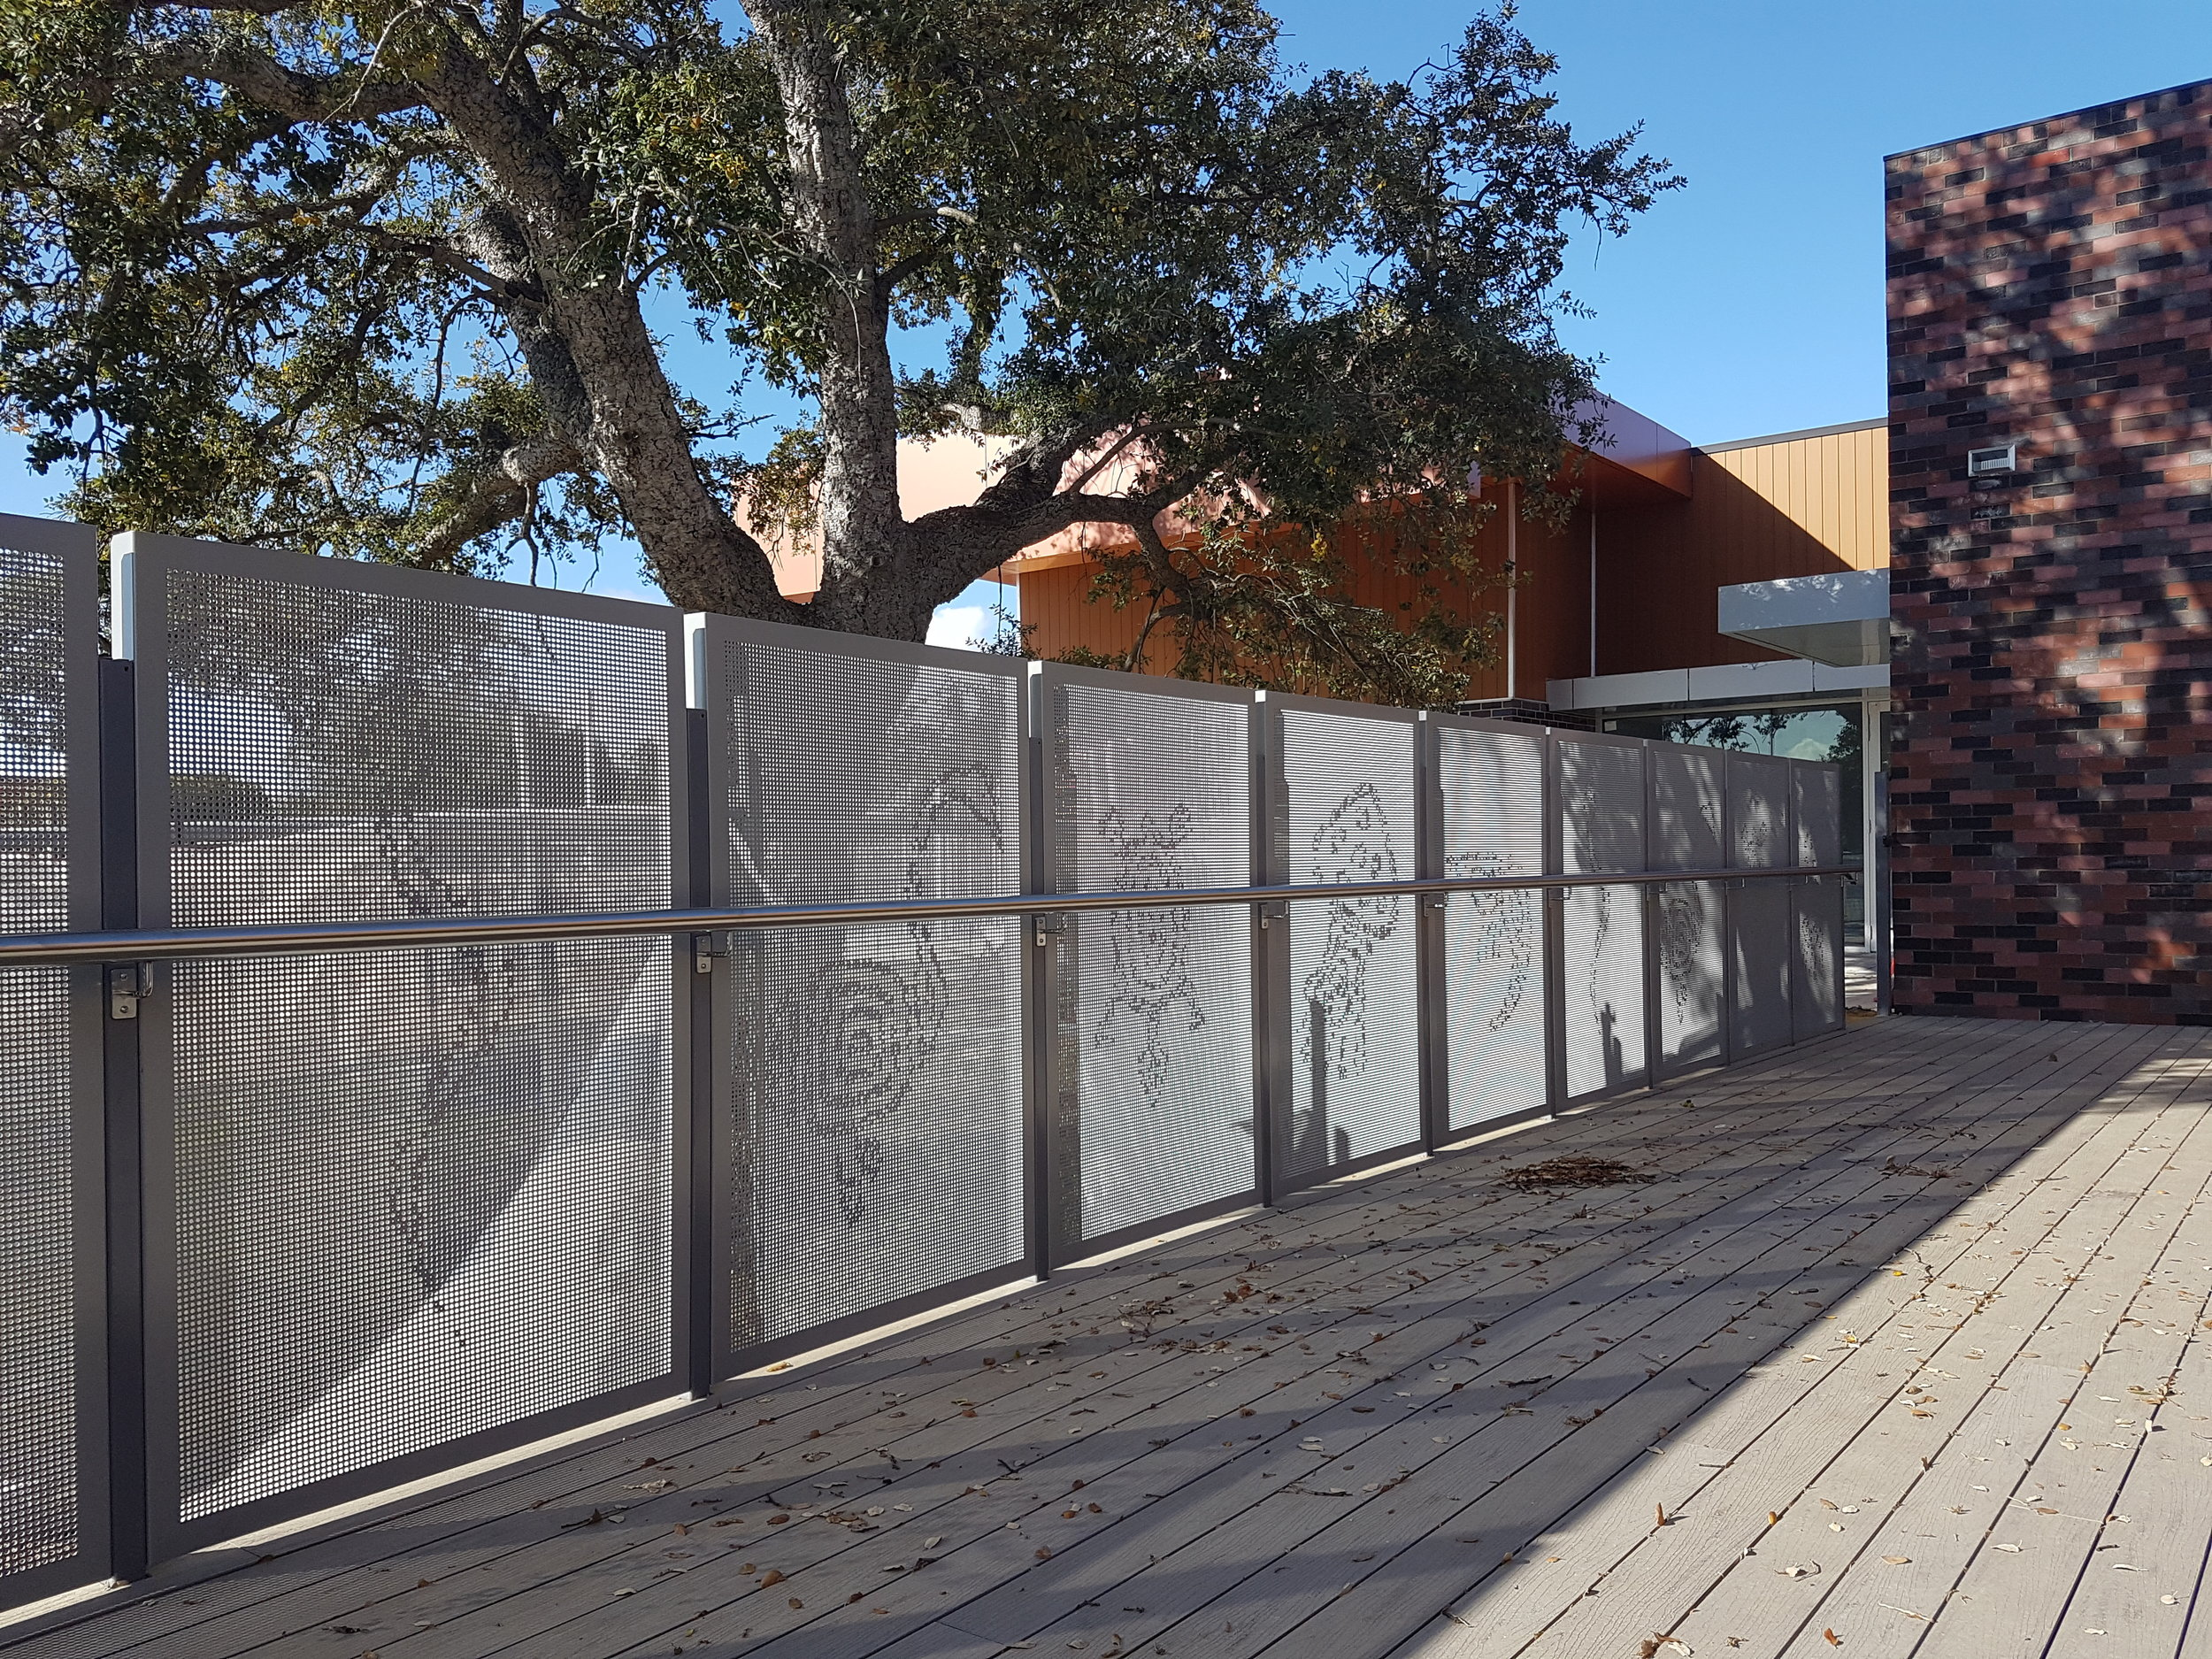 Manning Community hub Pact Construction pic perf aluminium perforated screen stainless steel handrail.jpg